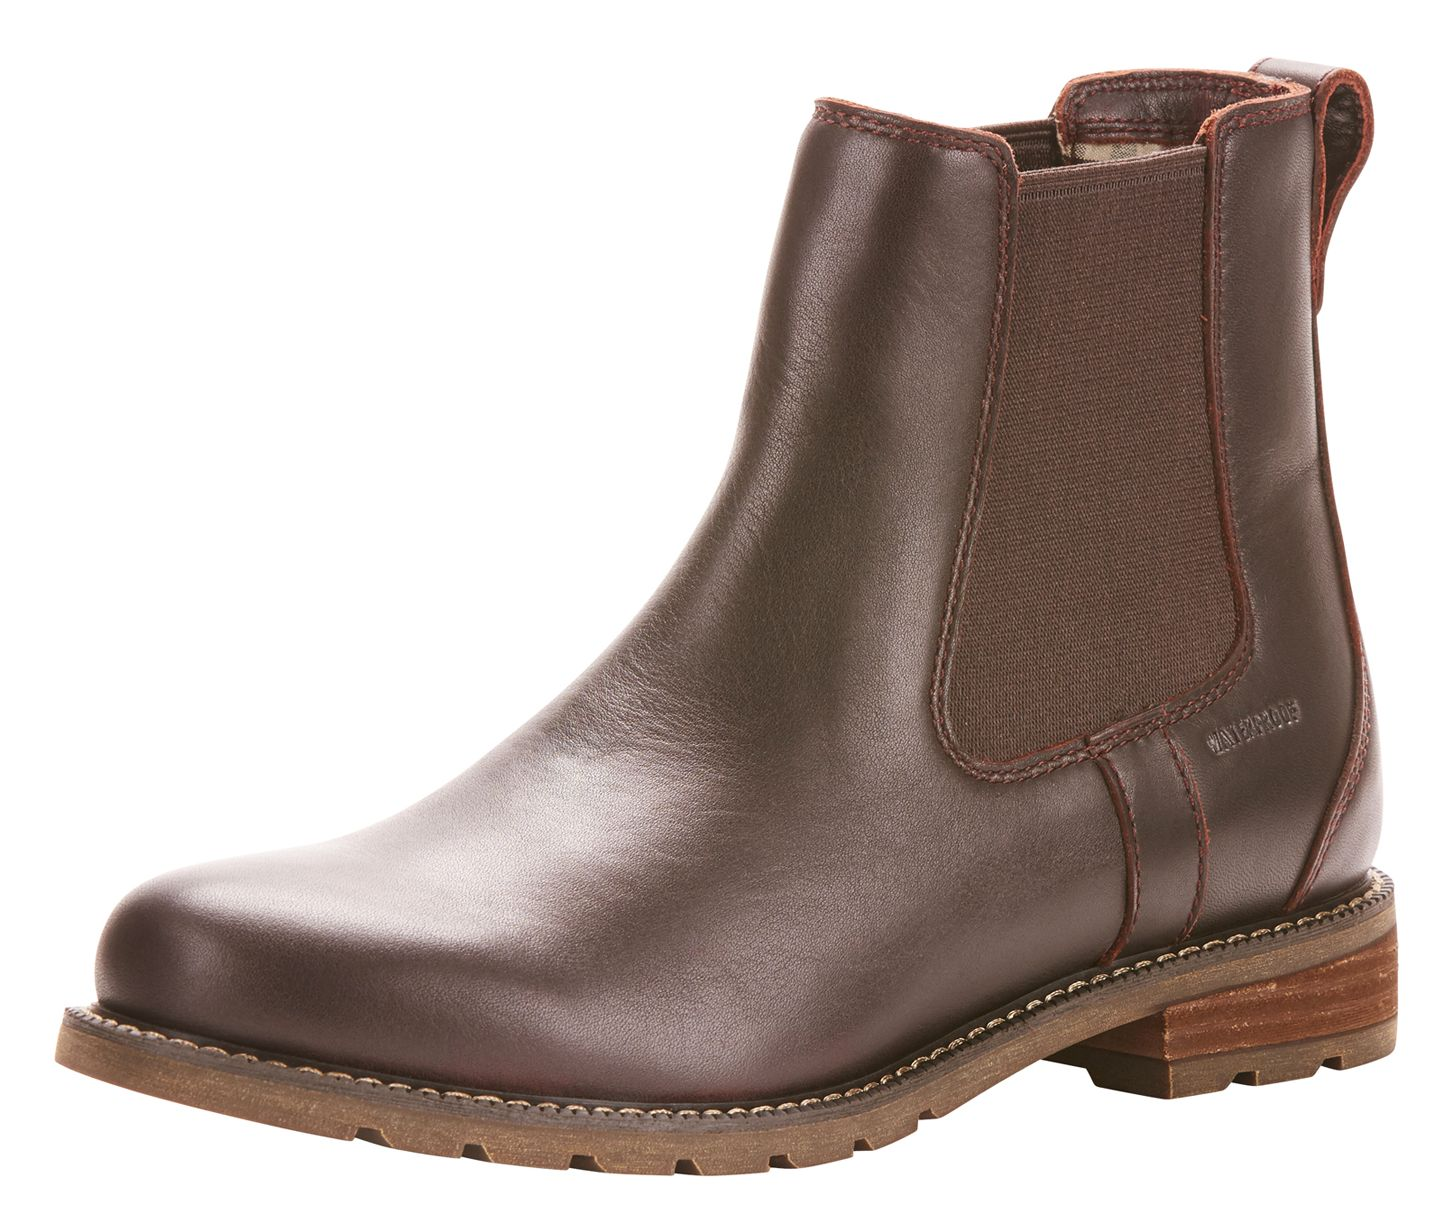 e3f9998681 Ariat Wexford H20 Ladies Boot Cordovan - Country - Riding Boots - Classic  Collection Ltd